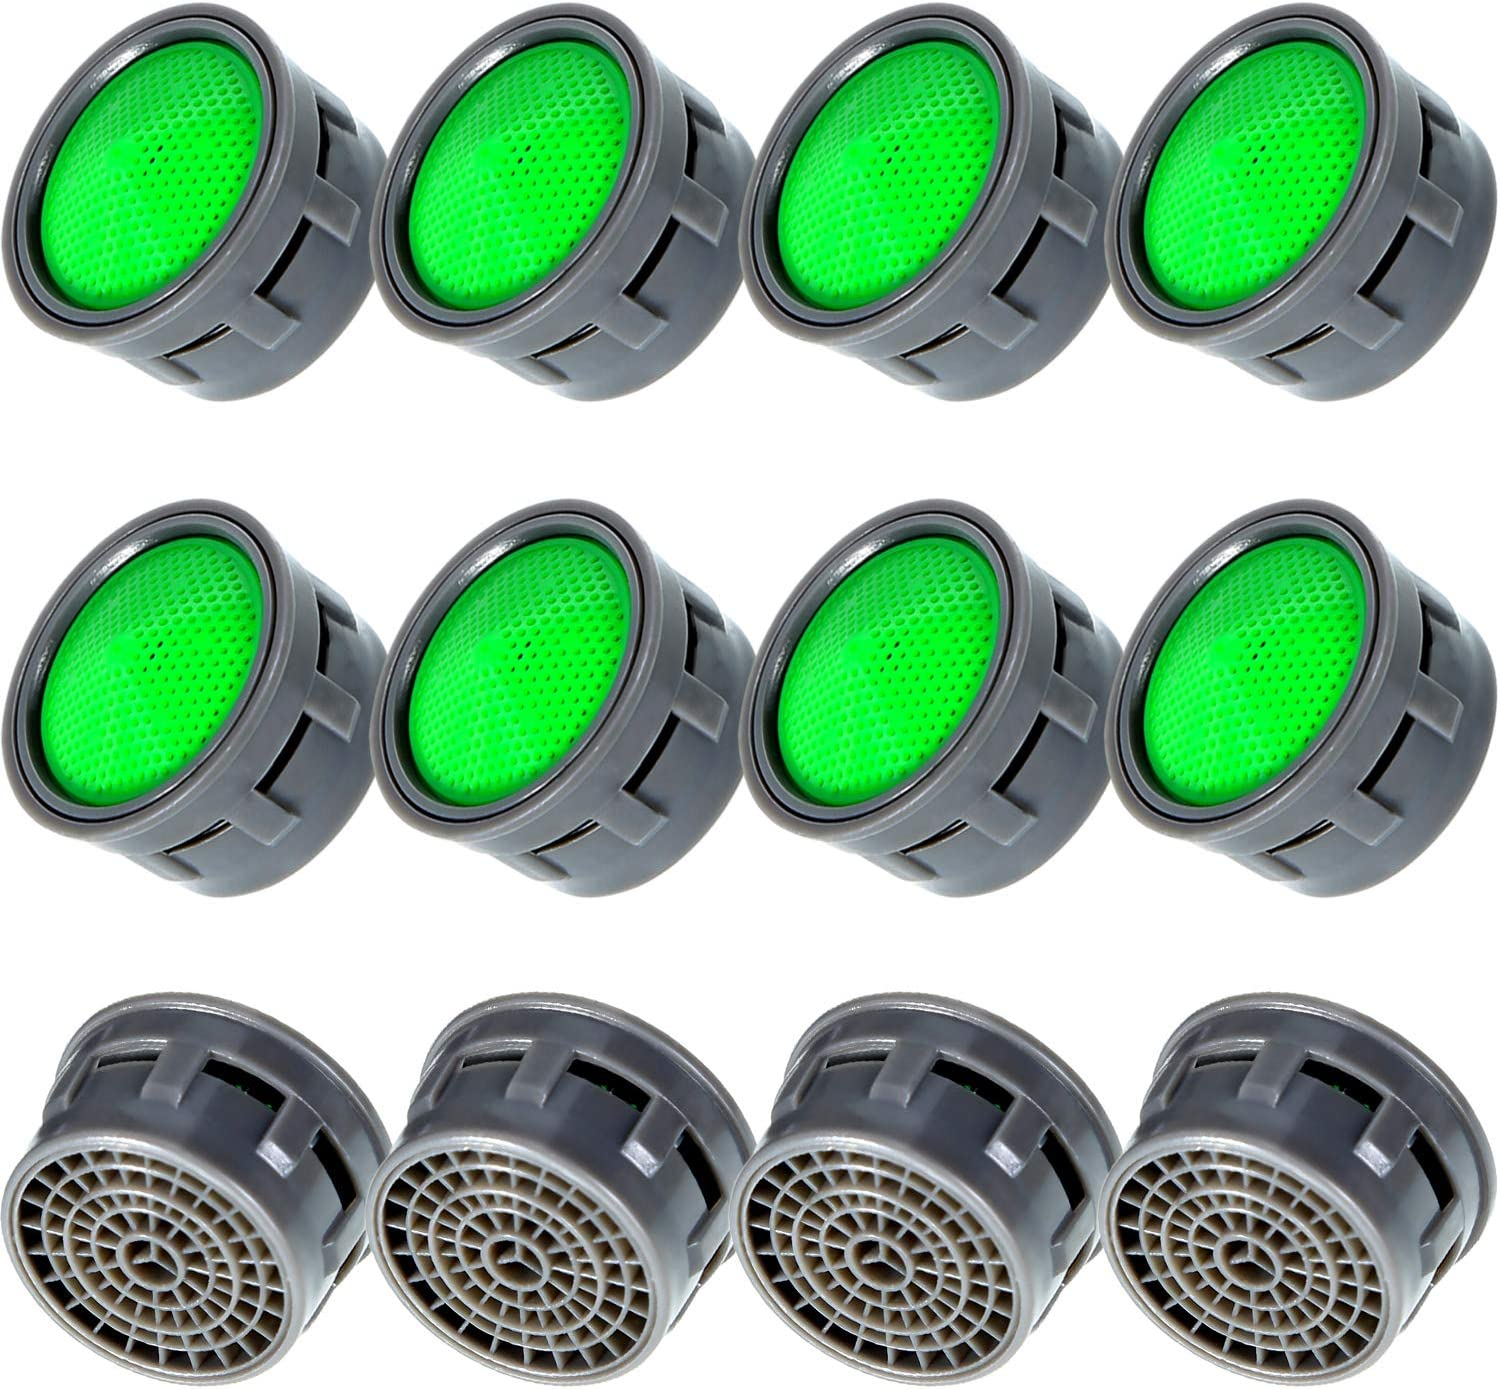 5 Pack 0.5 GPM Regular Size Water-Saving Aerator Insert Flow Restrictor Insert Faucet Aerators Replacement Parts by NIDAYE